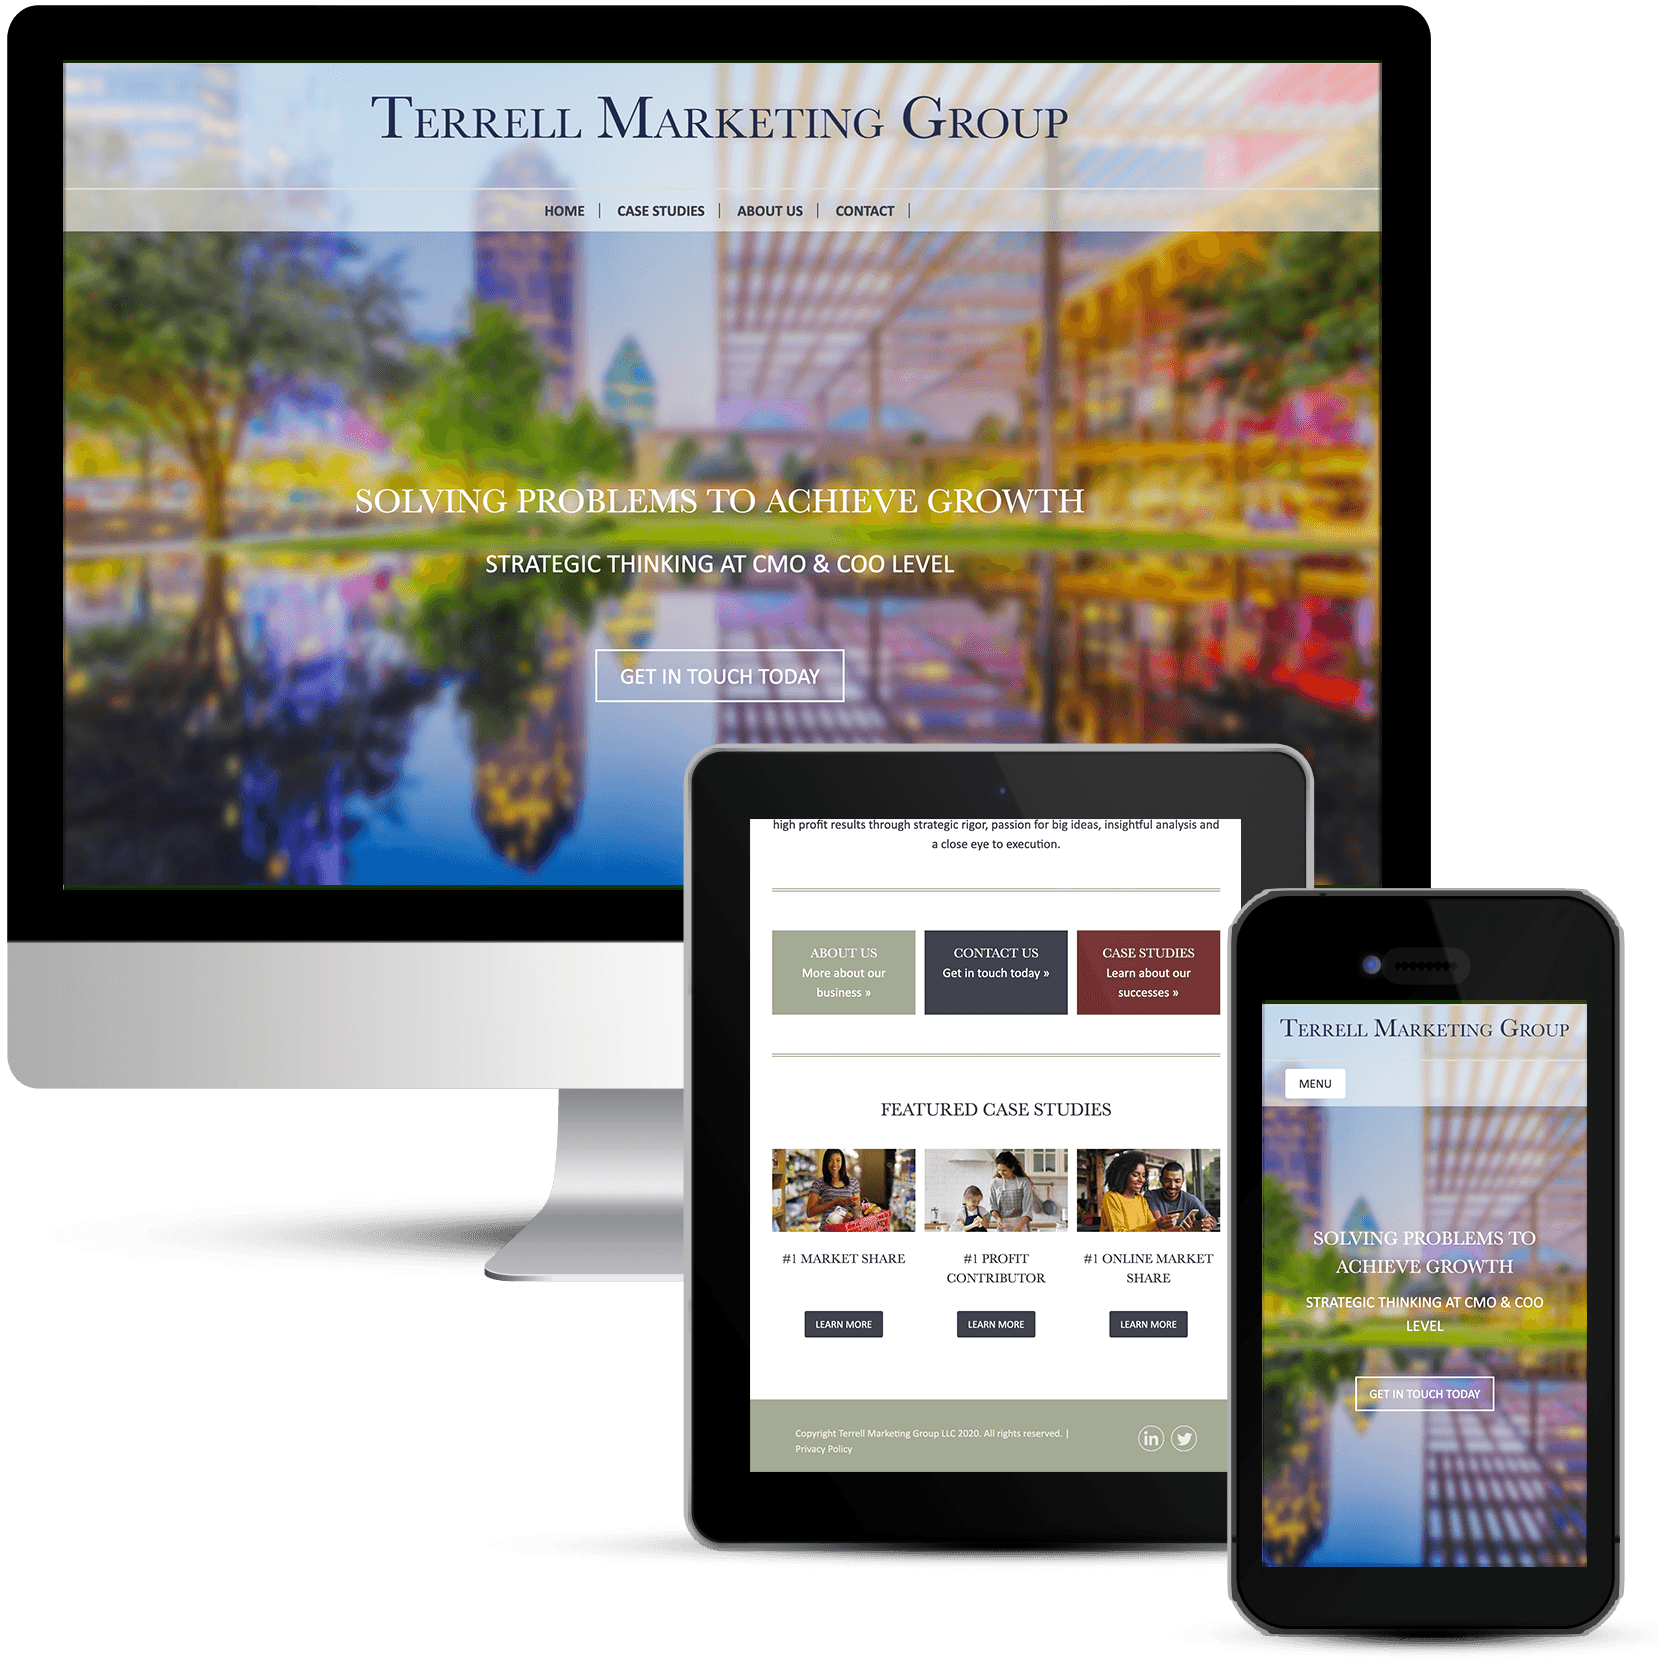 Terrell Marketing Group